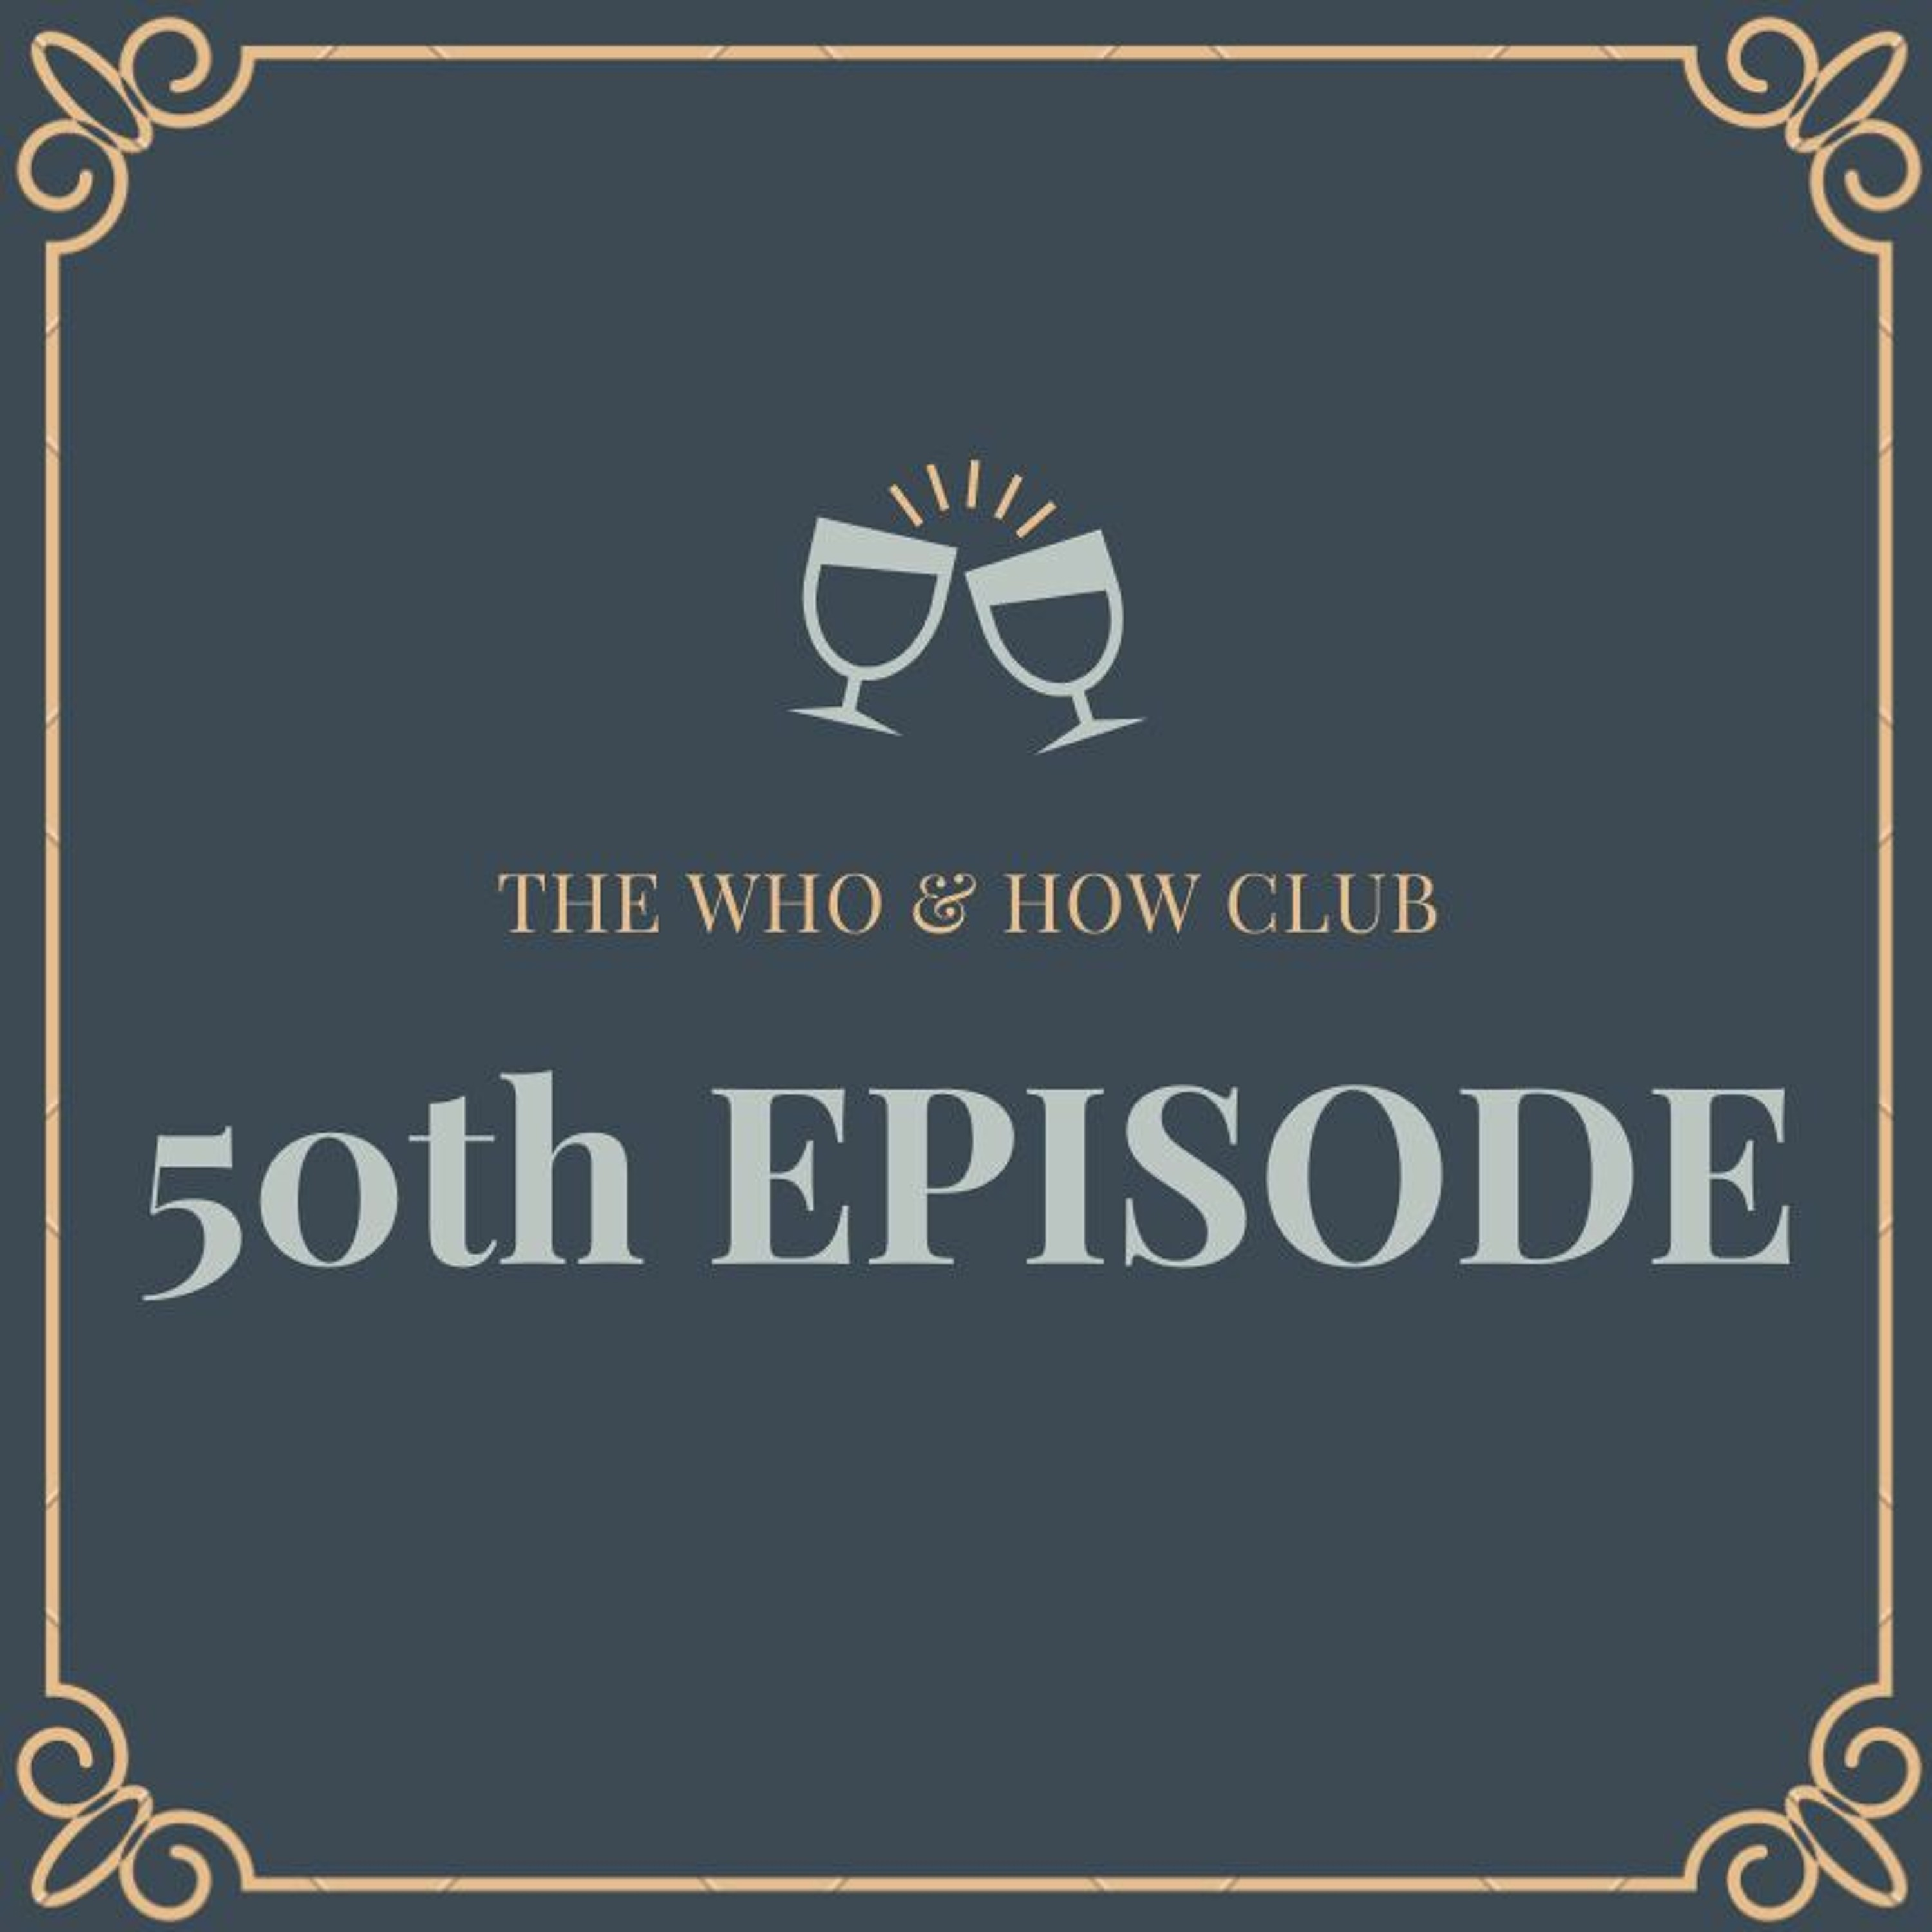 The Who & How Club